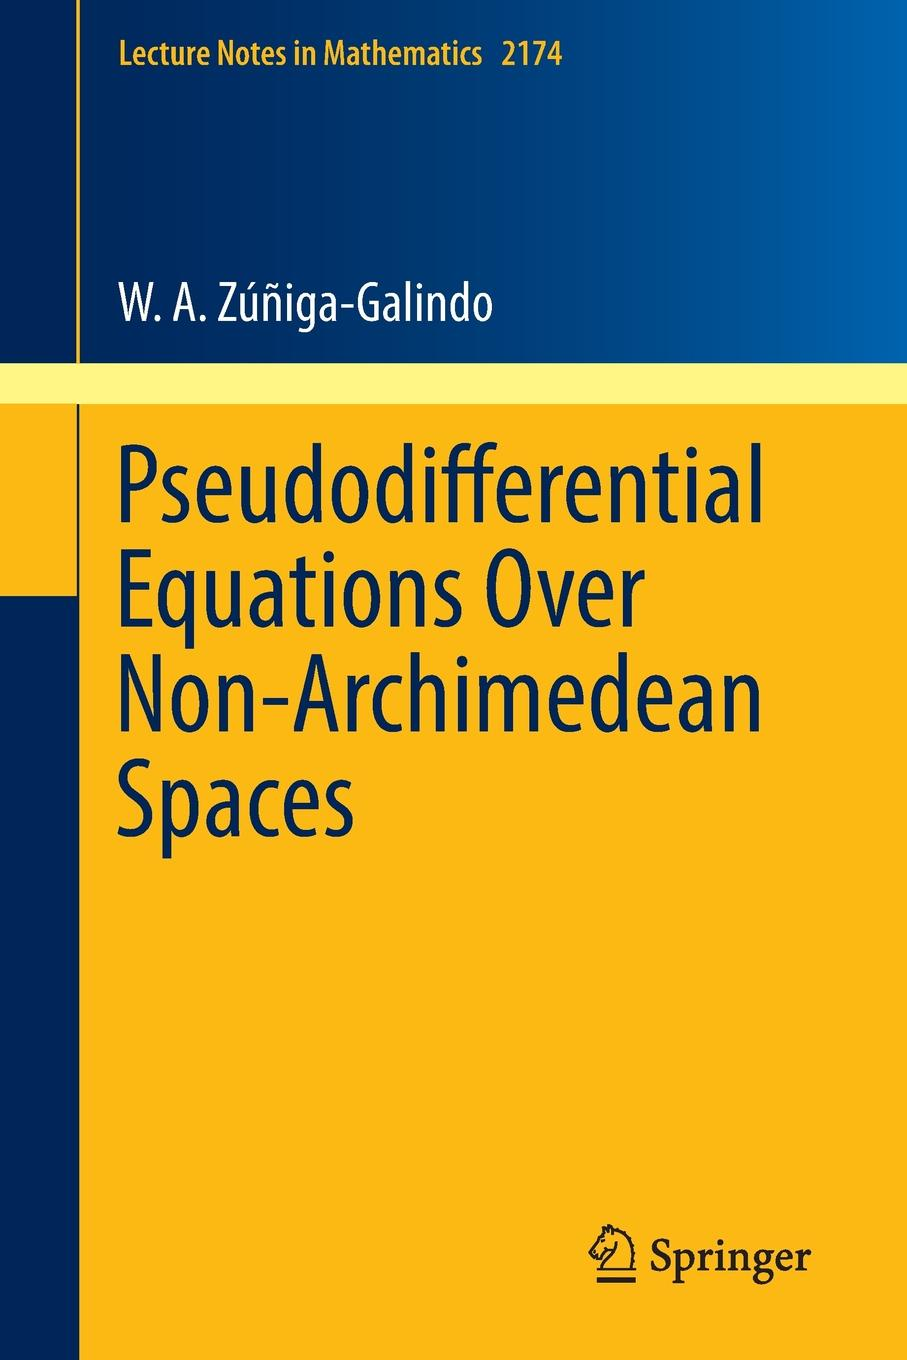 W. A. Zúñiga-Galindo Pseudodifferential Equations Over Non-Archimedean Spaces louis w fry liminal spaces and call for praxis ing